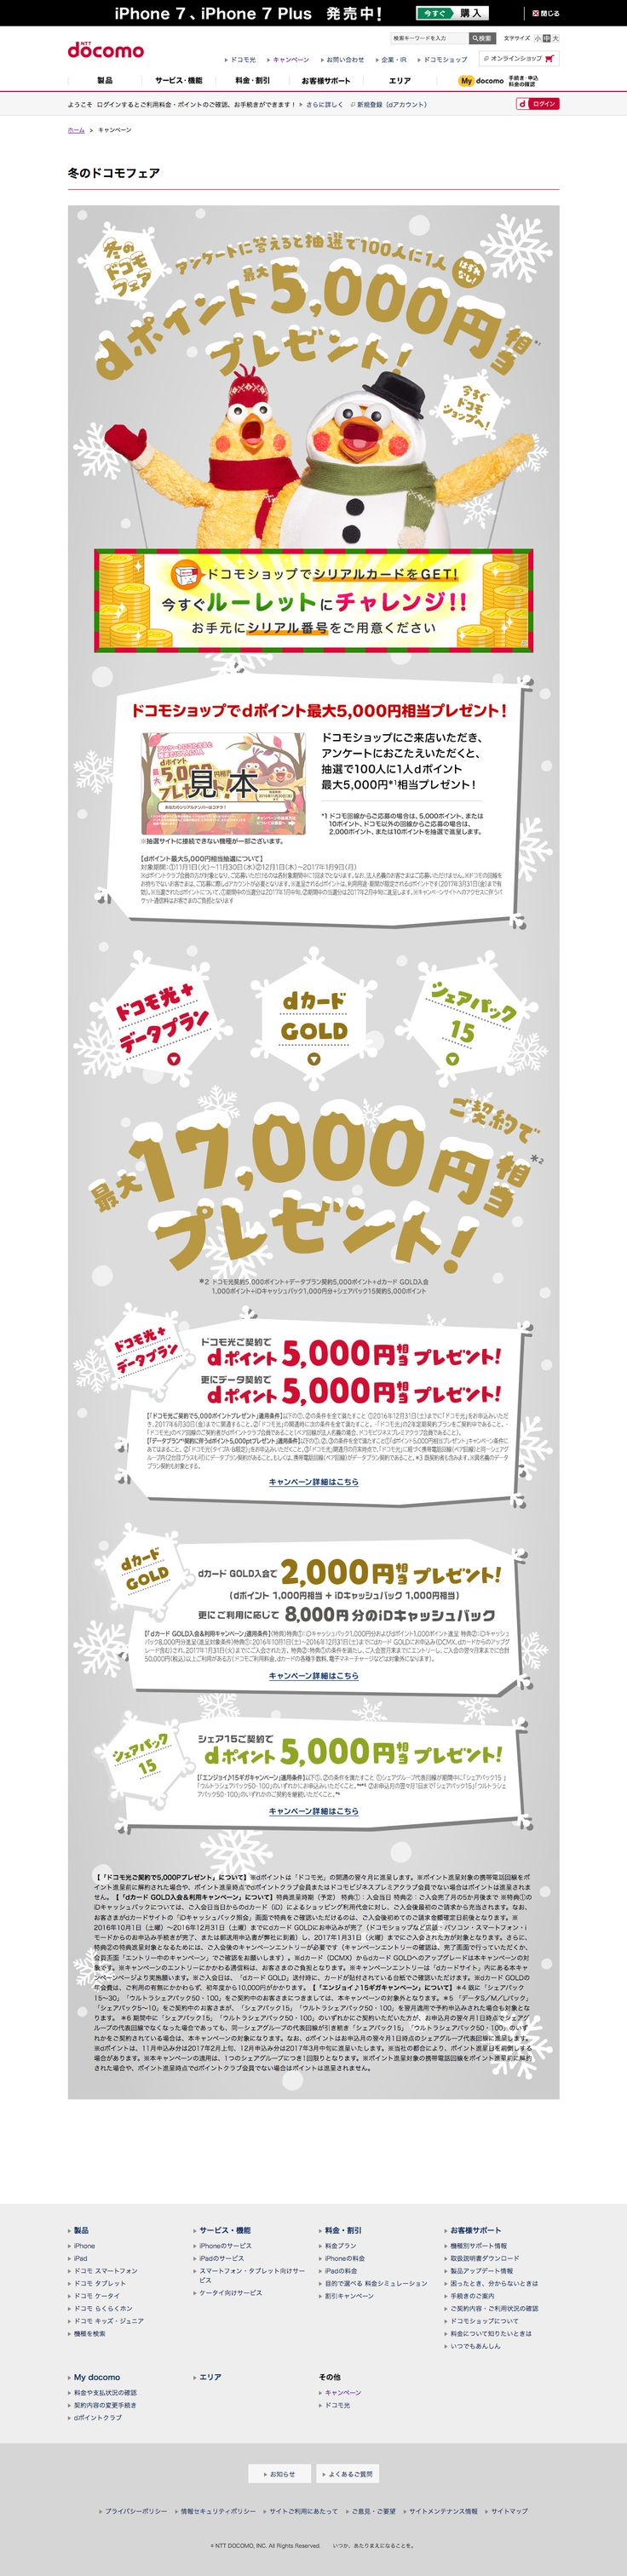 キャンペーン : 冬のドコモフェア https://www.nttdocomo.co.jp/campaign_event/winter_fes/index.html